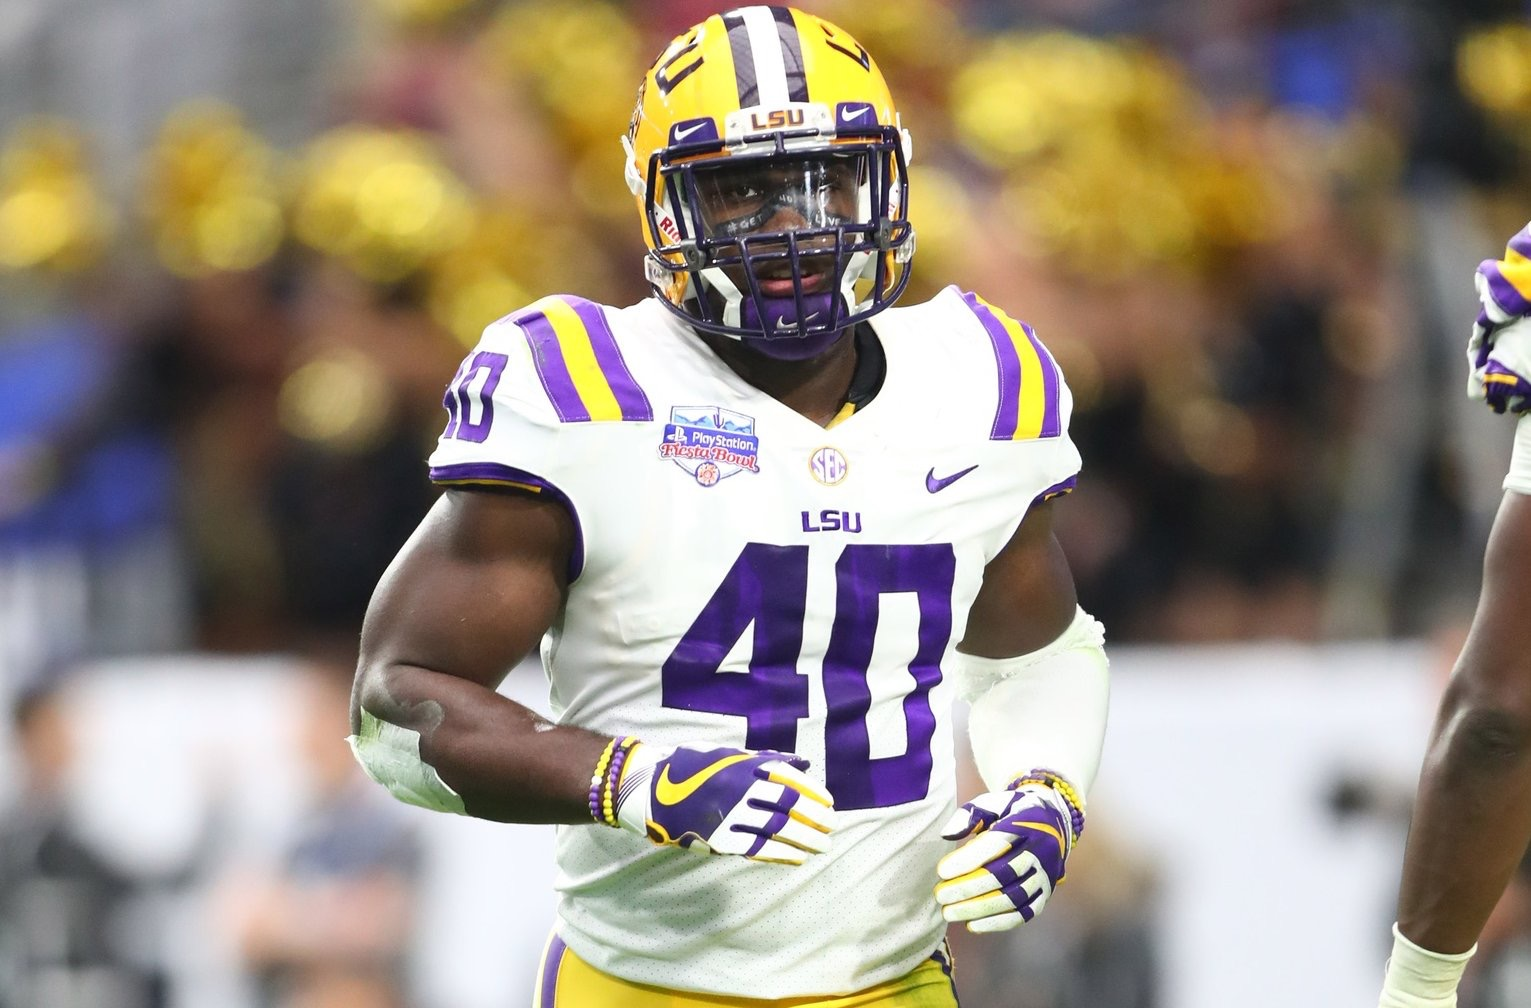 LSU star Devin White to declare for 2019 NFL Draft